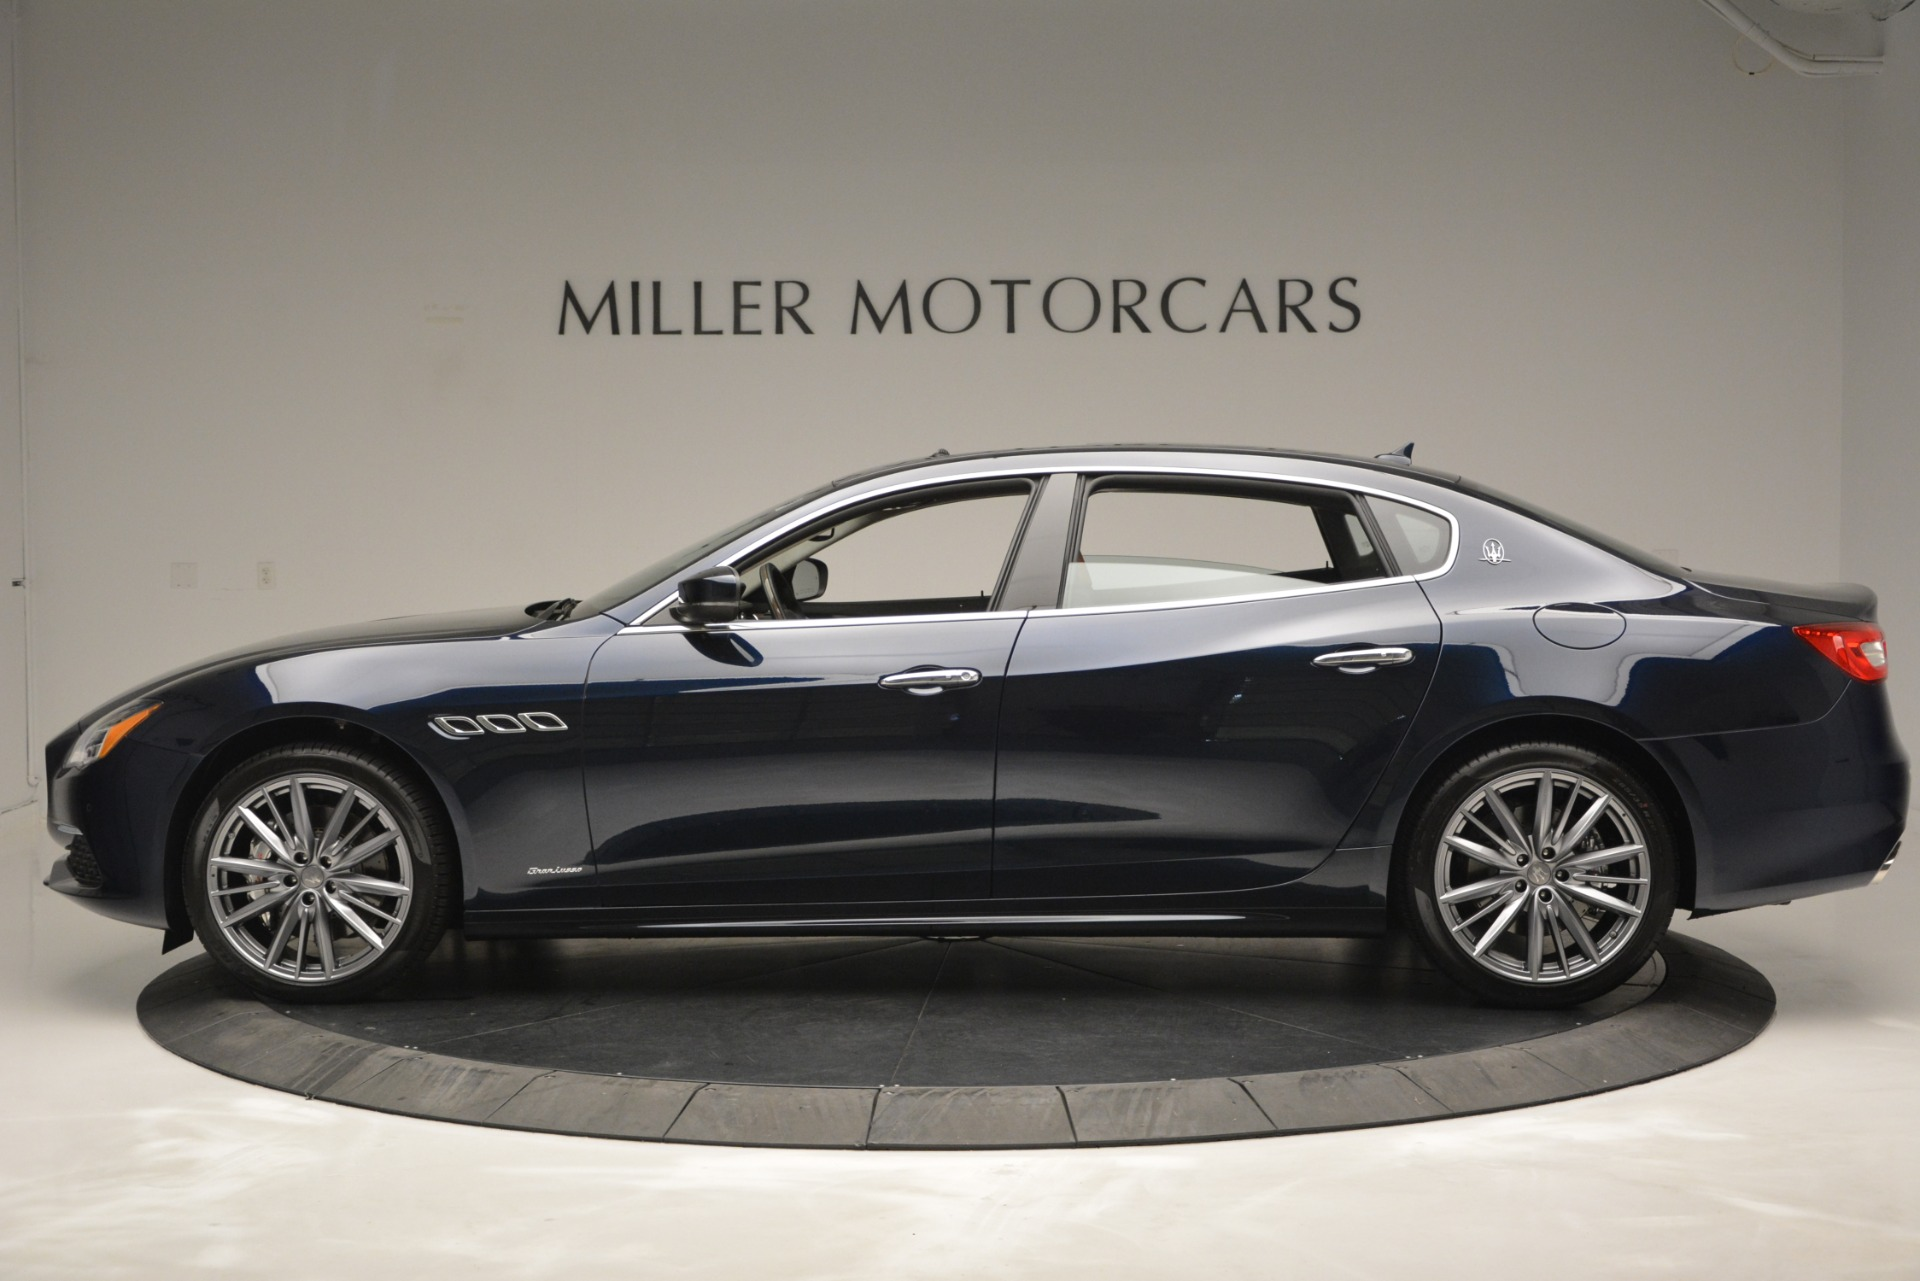 New 2019 Maserati Quattroporte S Q4 GranLusso Edizione Nobile For Sale In Greenwich, CT 2898_p5